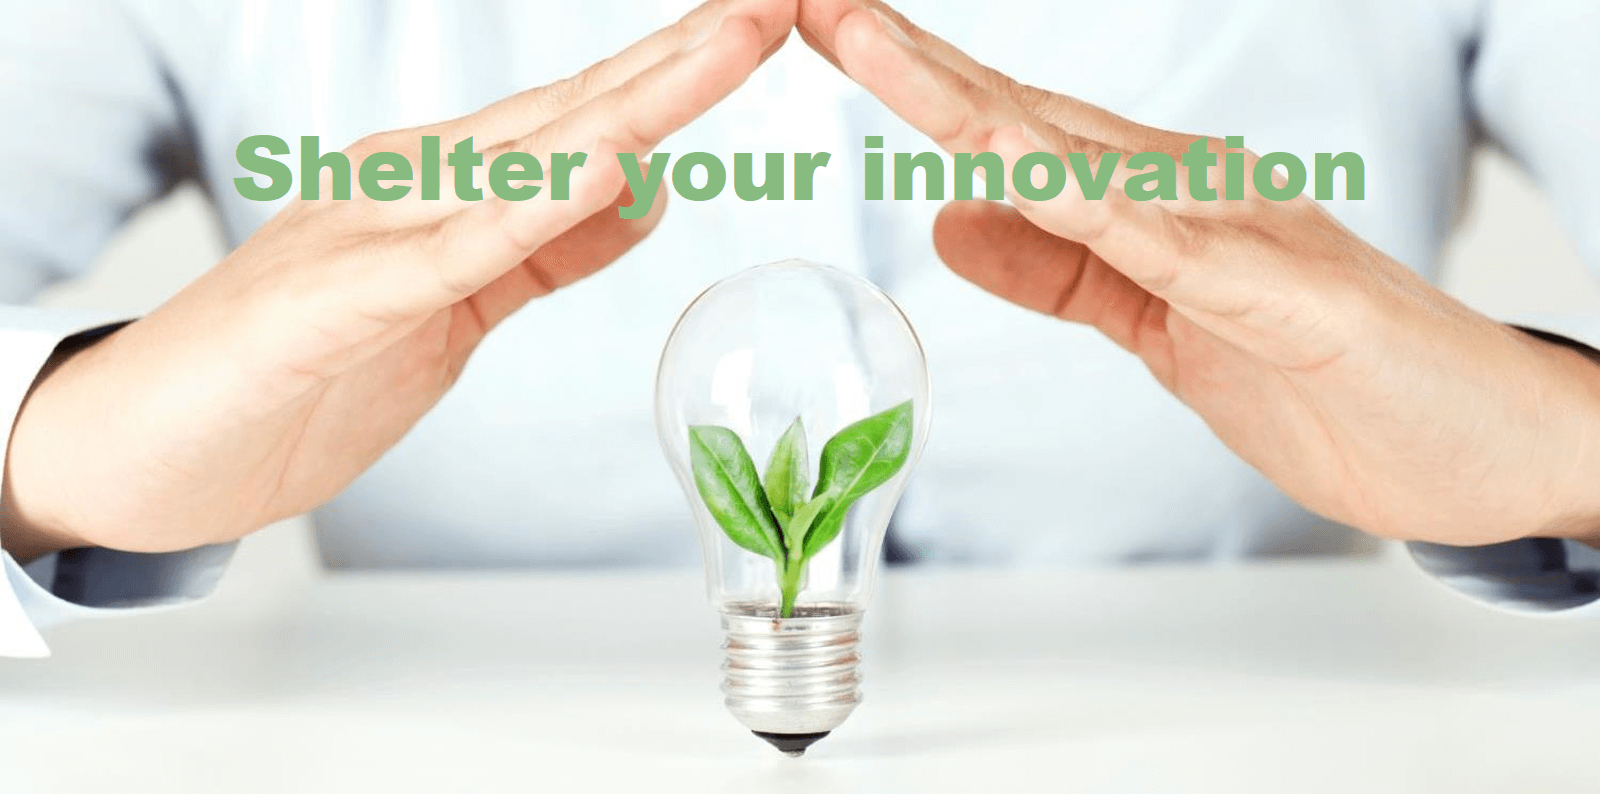 B2B-Leaders-Should-Shelter-Their-New-Product-Innovation-Teams